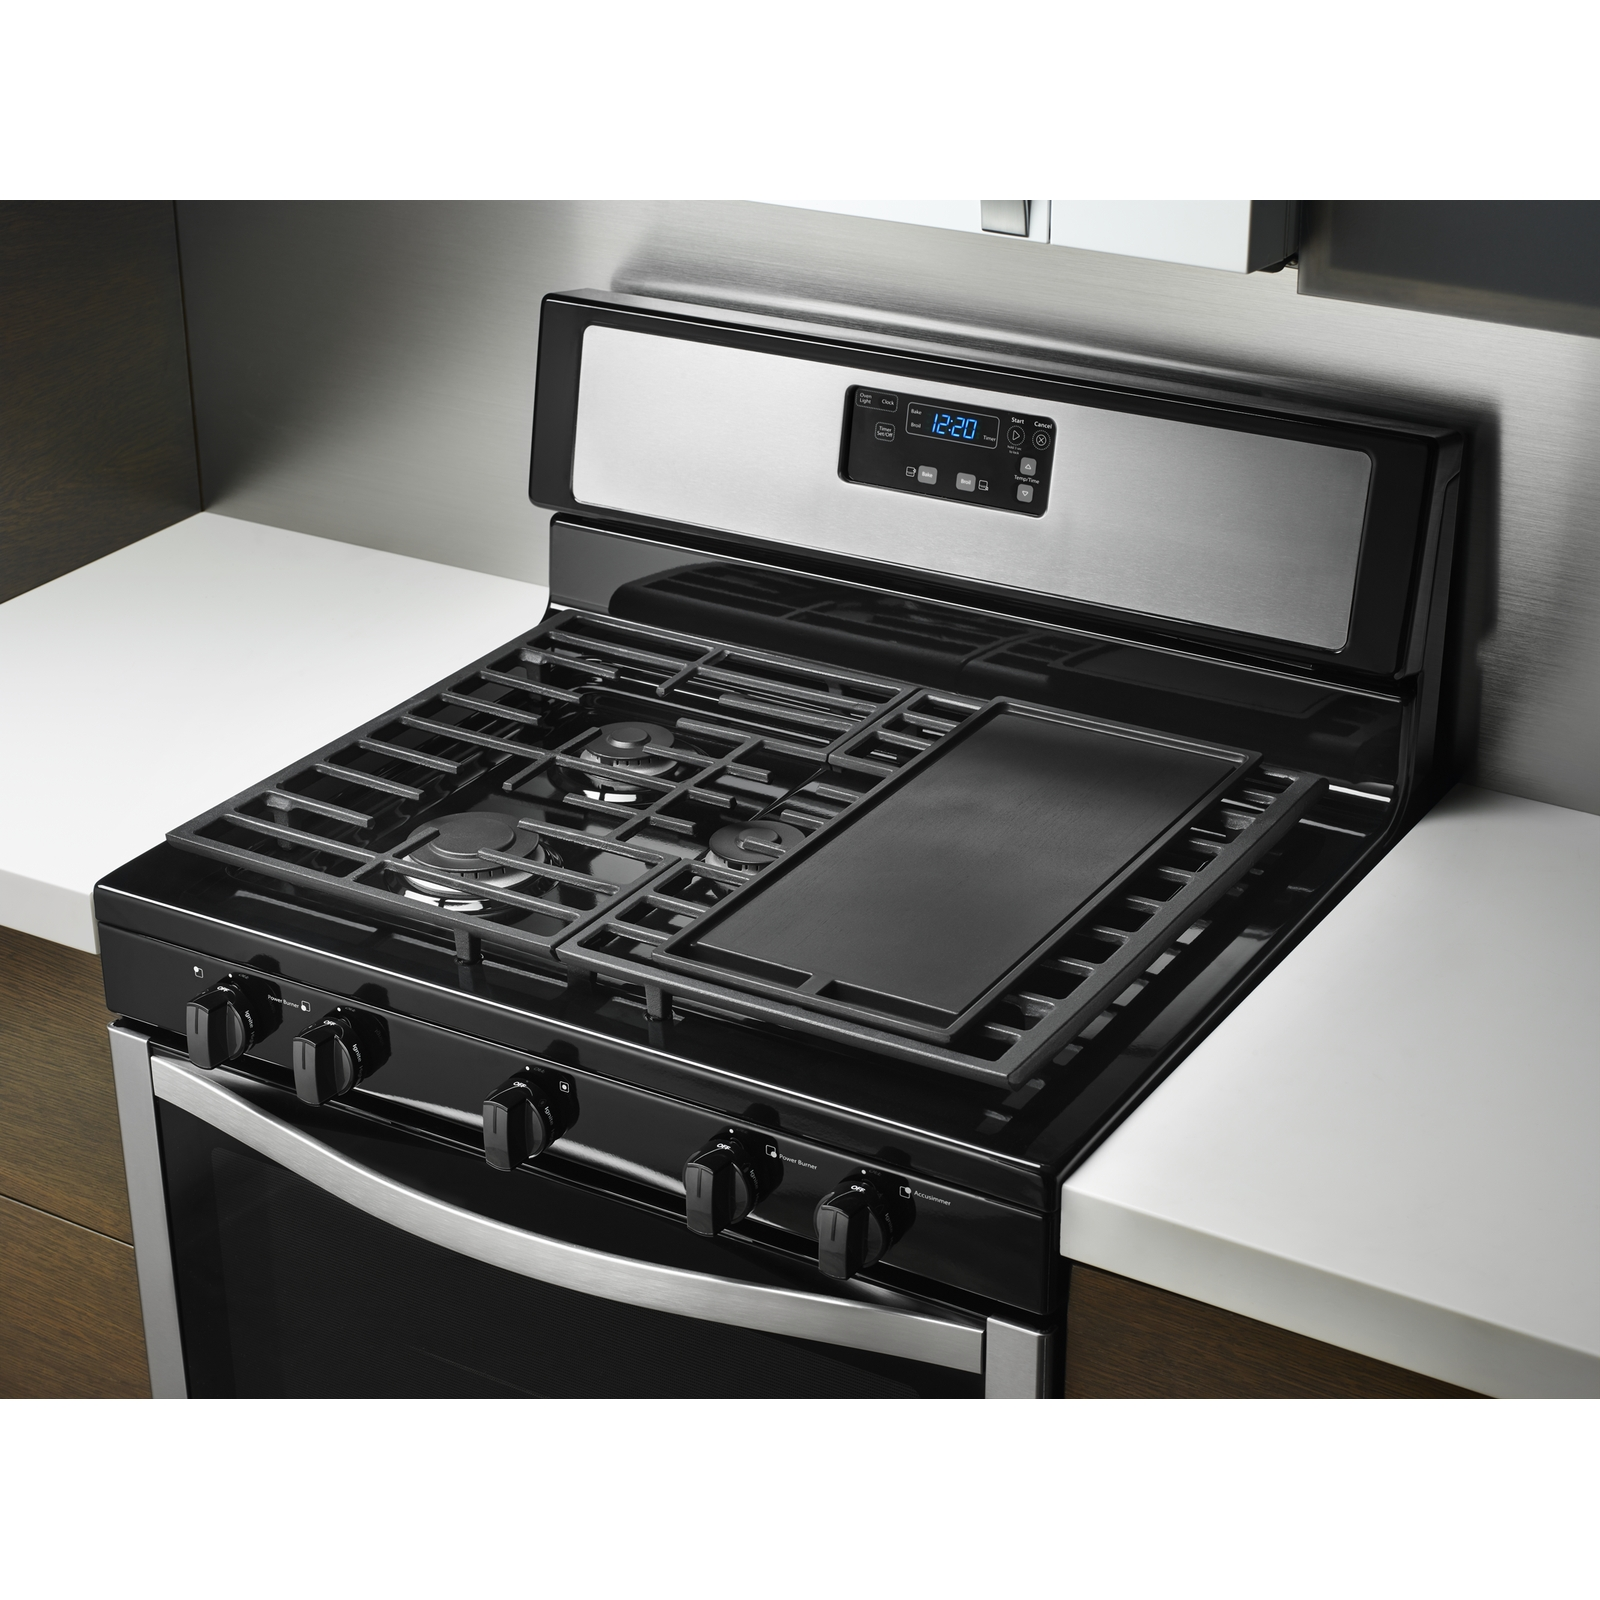 Whirlpool WFG505M0BS 5.1 cu. ft. Gas Range w/ Griddle - Stainless Steel